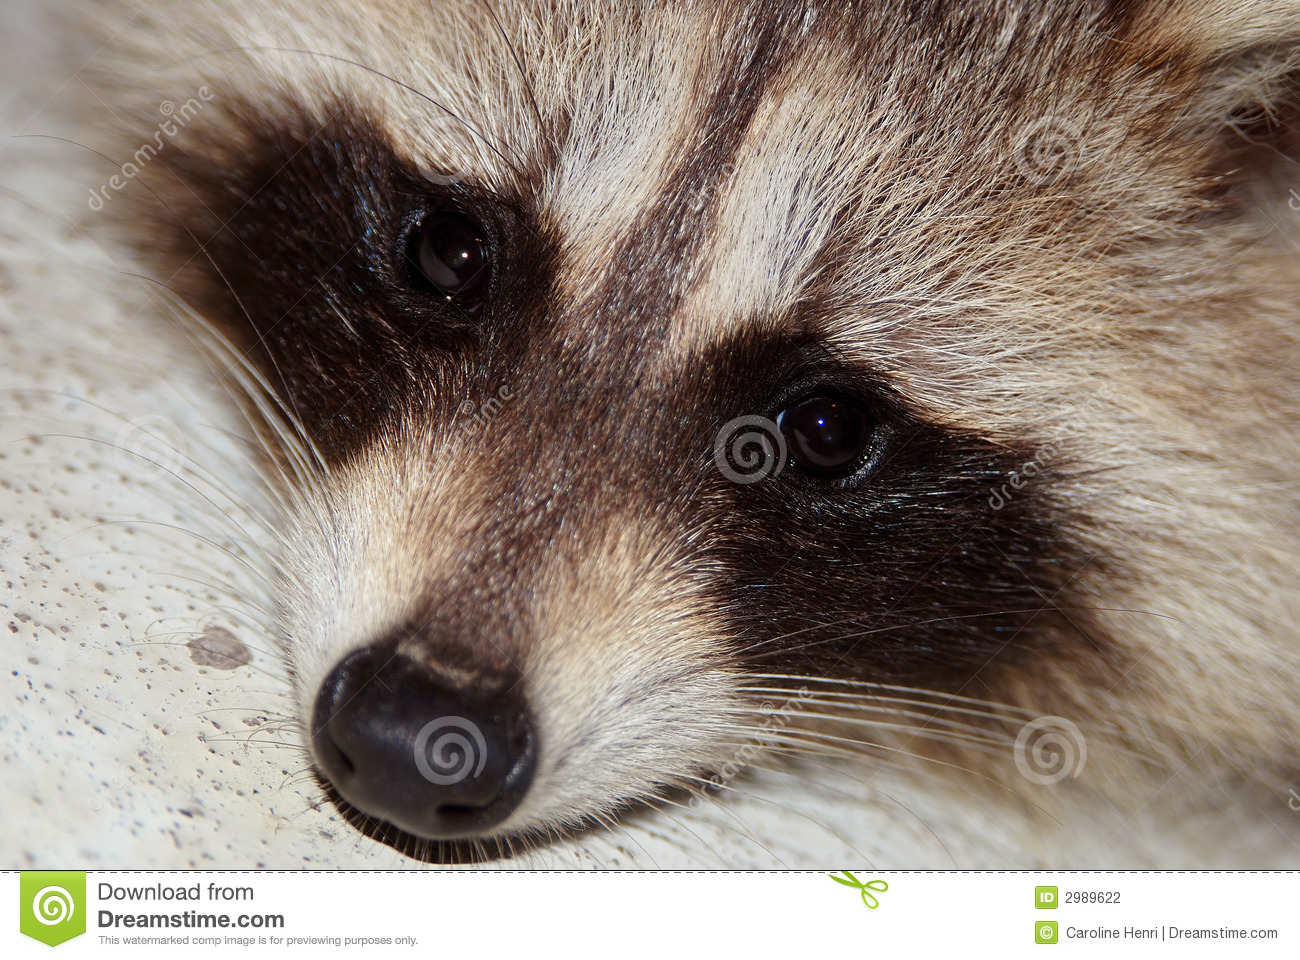 Raccoon Face Drawing Images for - raccoon face. Raccoon Face Clip Art